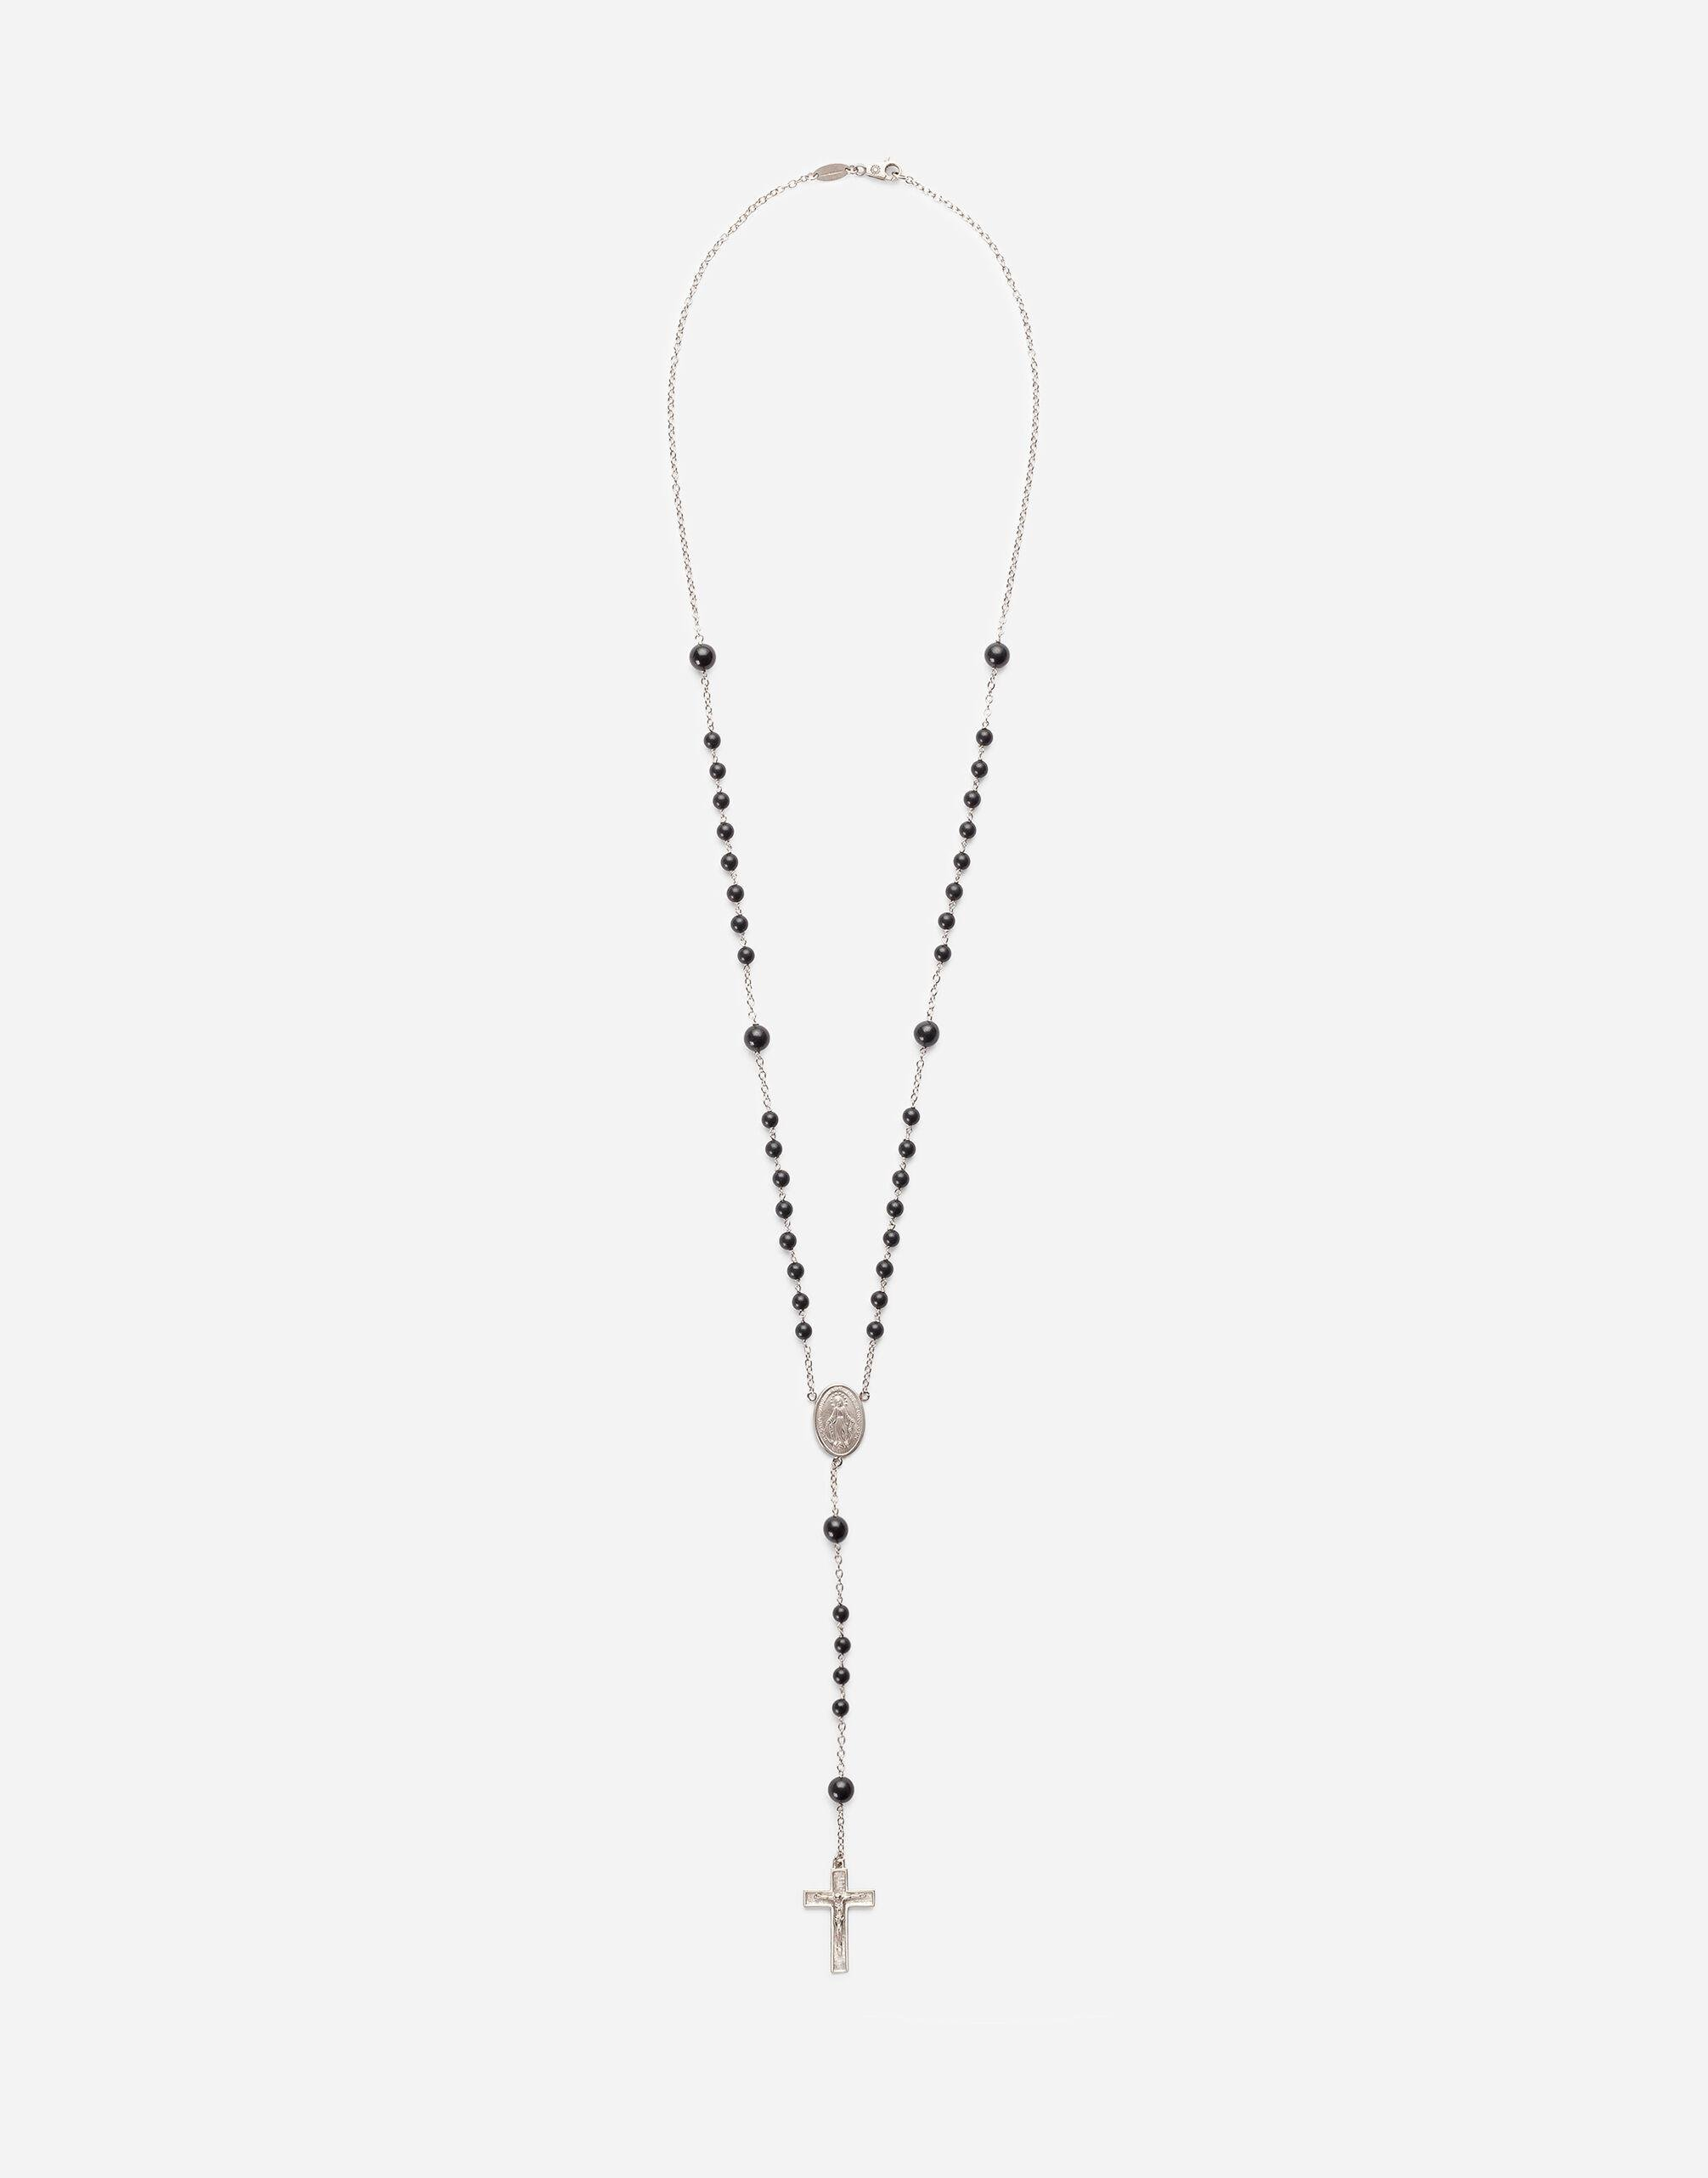 Tradition rosary necklace in yellow gold with black jades beads